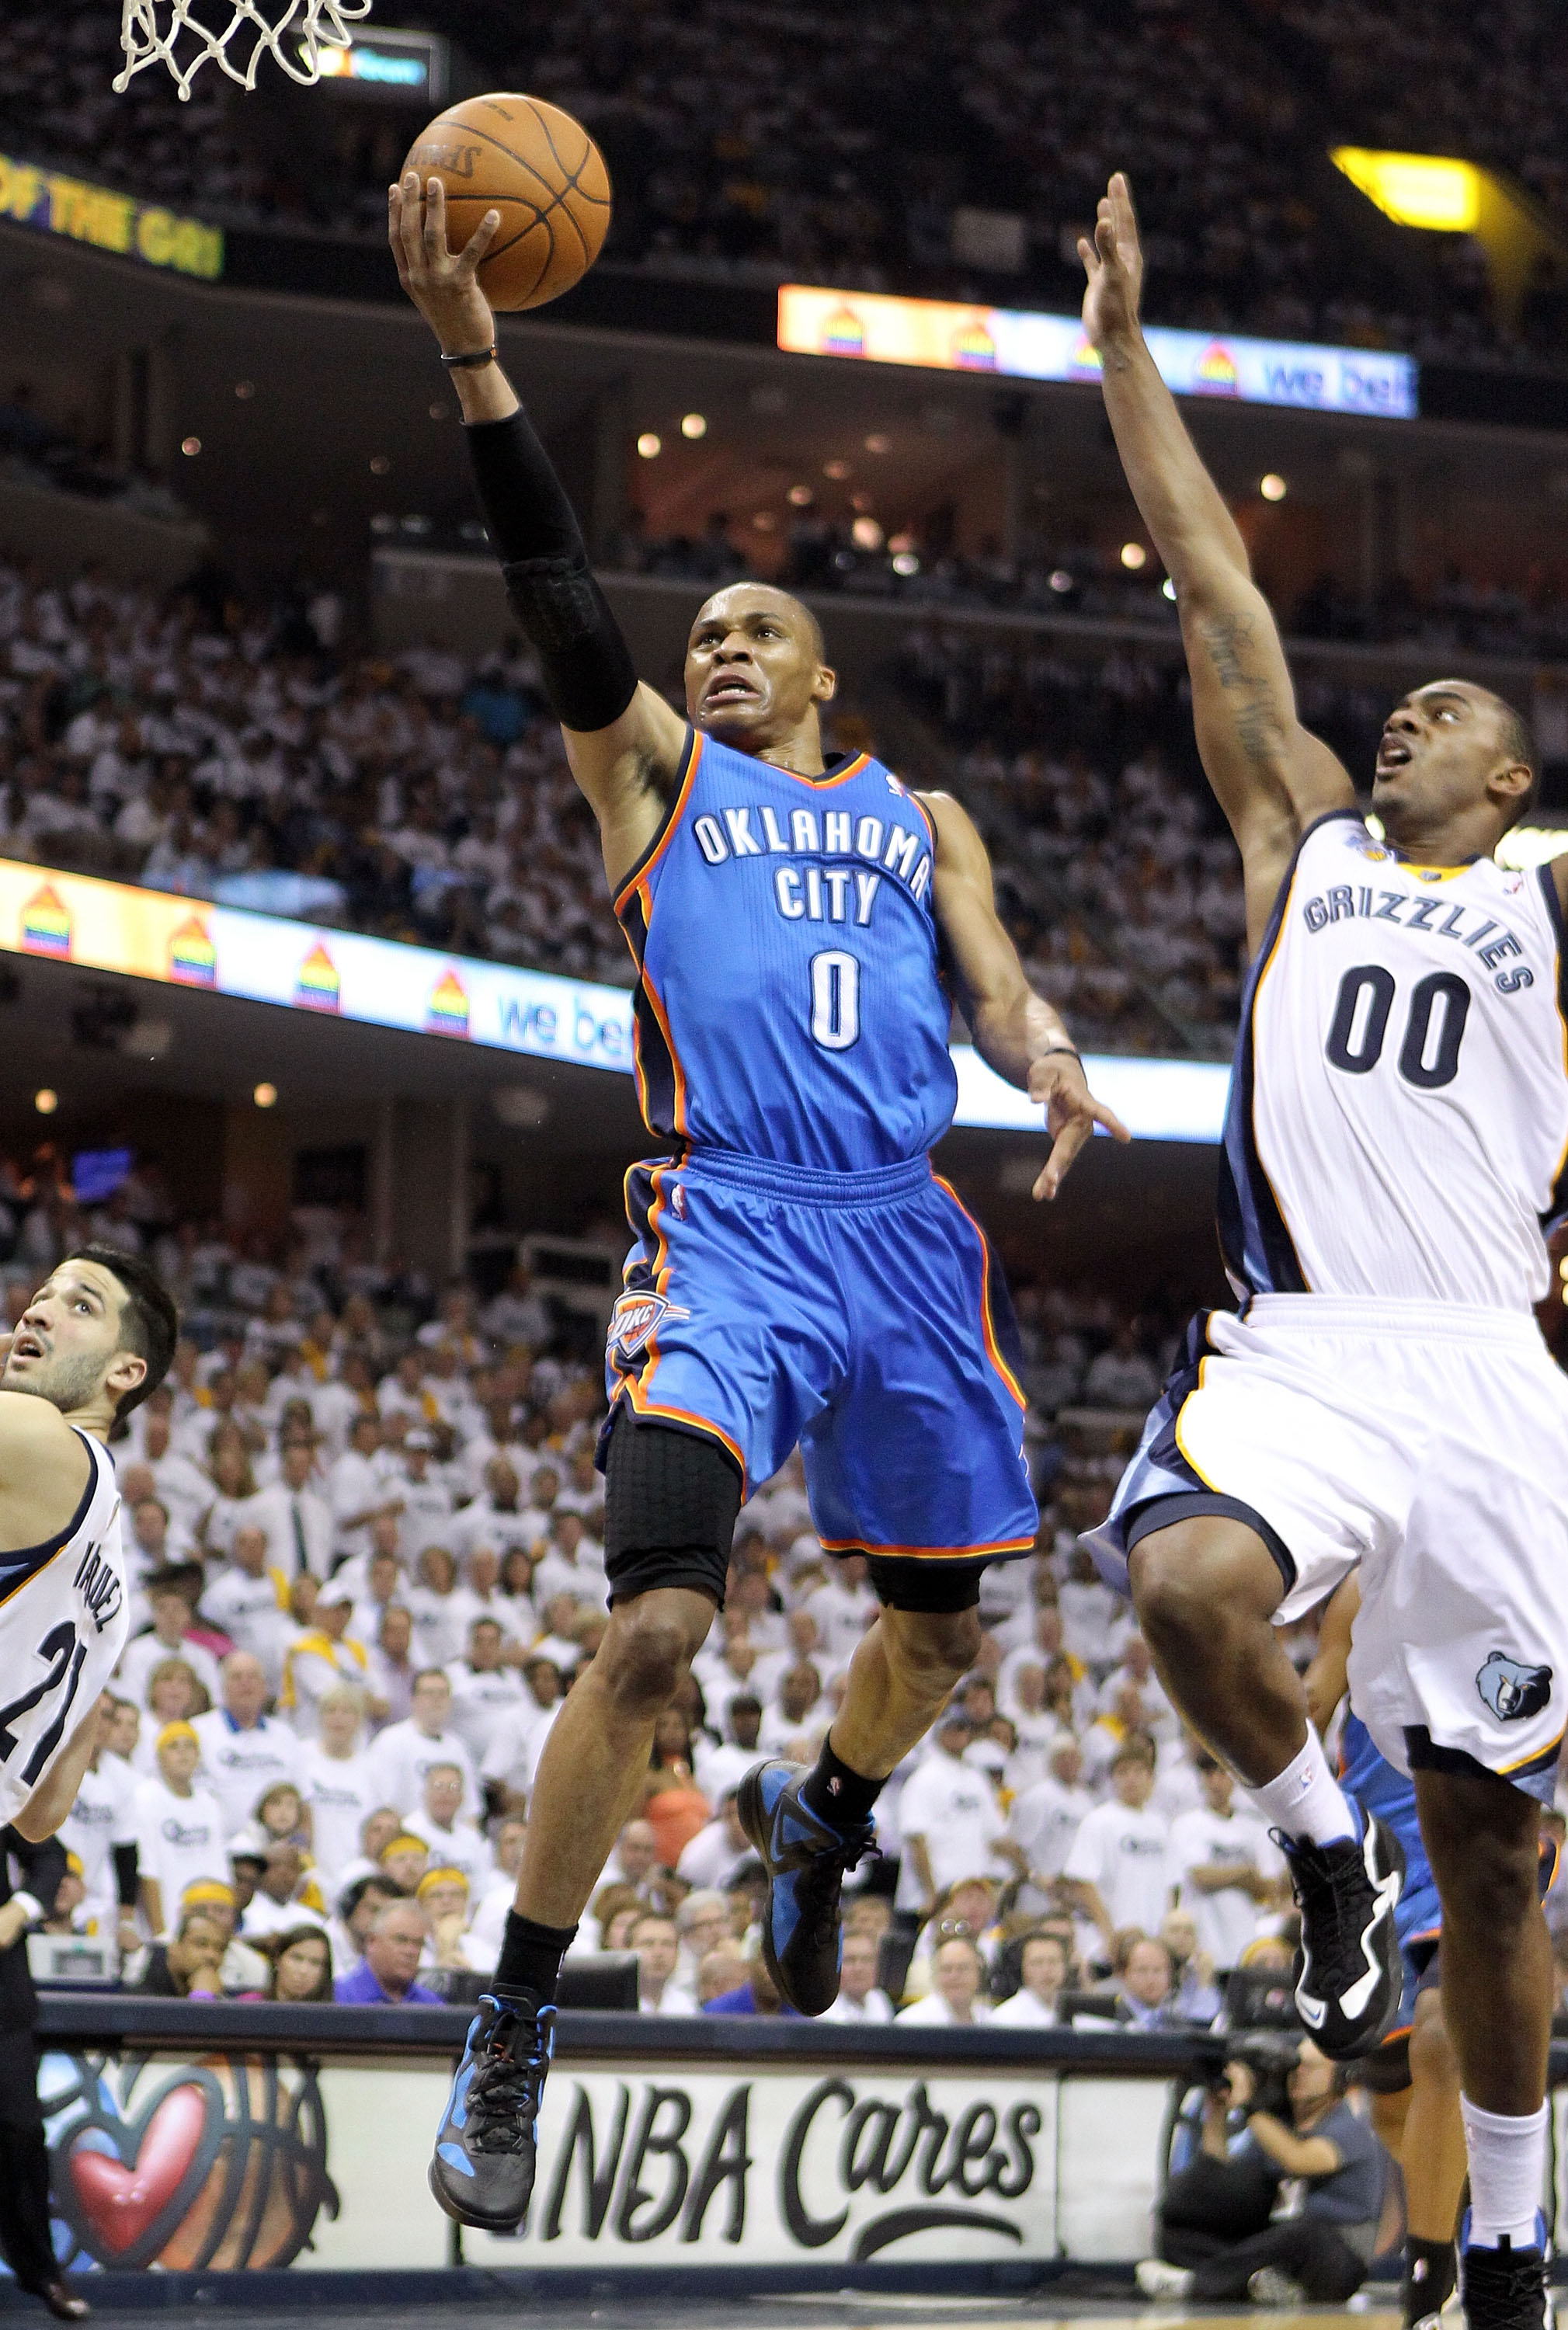 MEMPHIS, TN - MAY 09:  Russell Westbrook #0 of the Oklahoma City Thunder shoots the ball while defended by Darrell Arthur #00 of the Memphis Grizzlies in Game Four of the Western Conference Semifinals in the 2011 NBA Playoffs at FedExForum on May 9, 2011